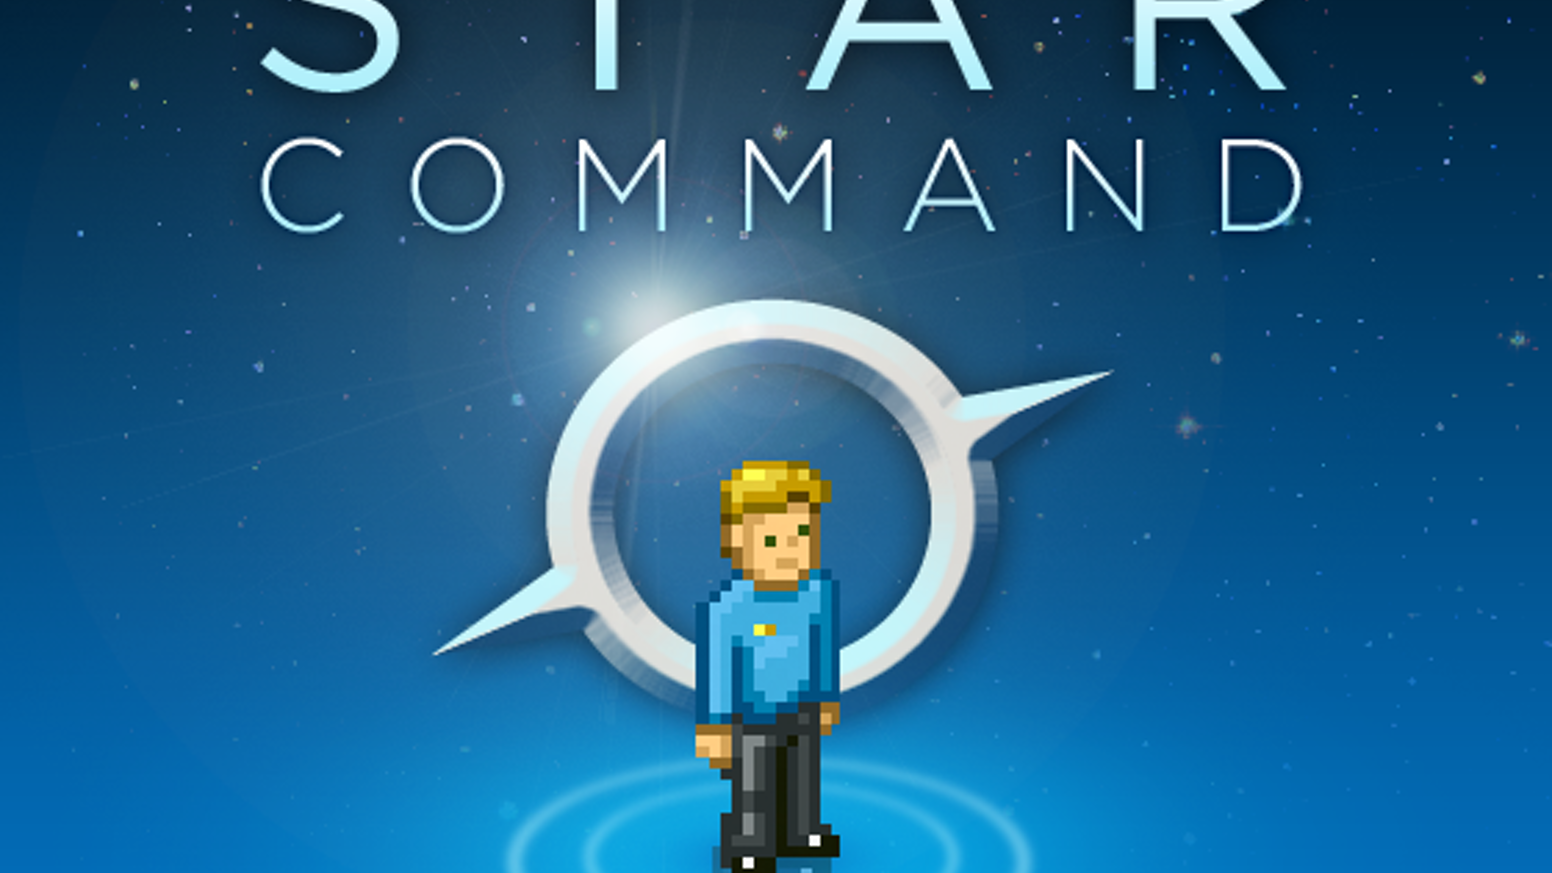 Star Command is a game for iOS and Android where players can build their own ship, recruit their crew and explore the universe.